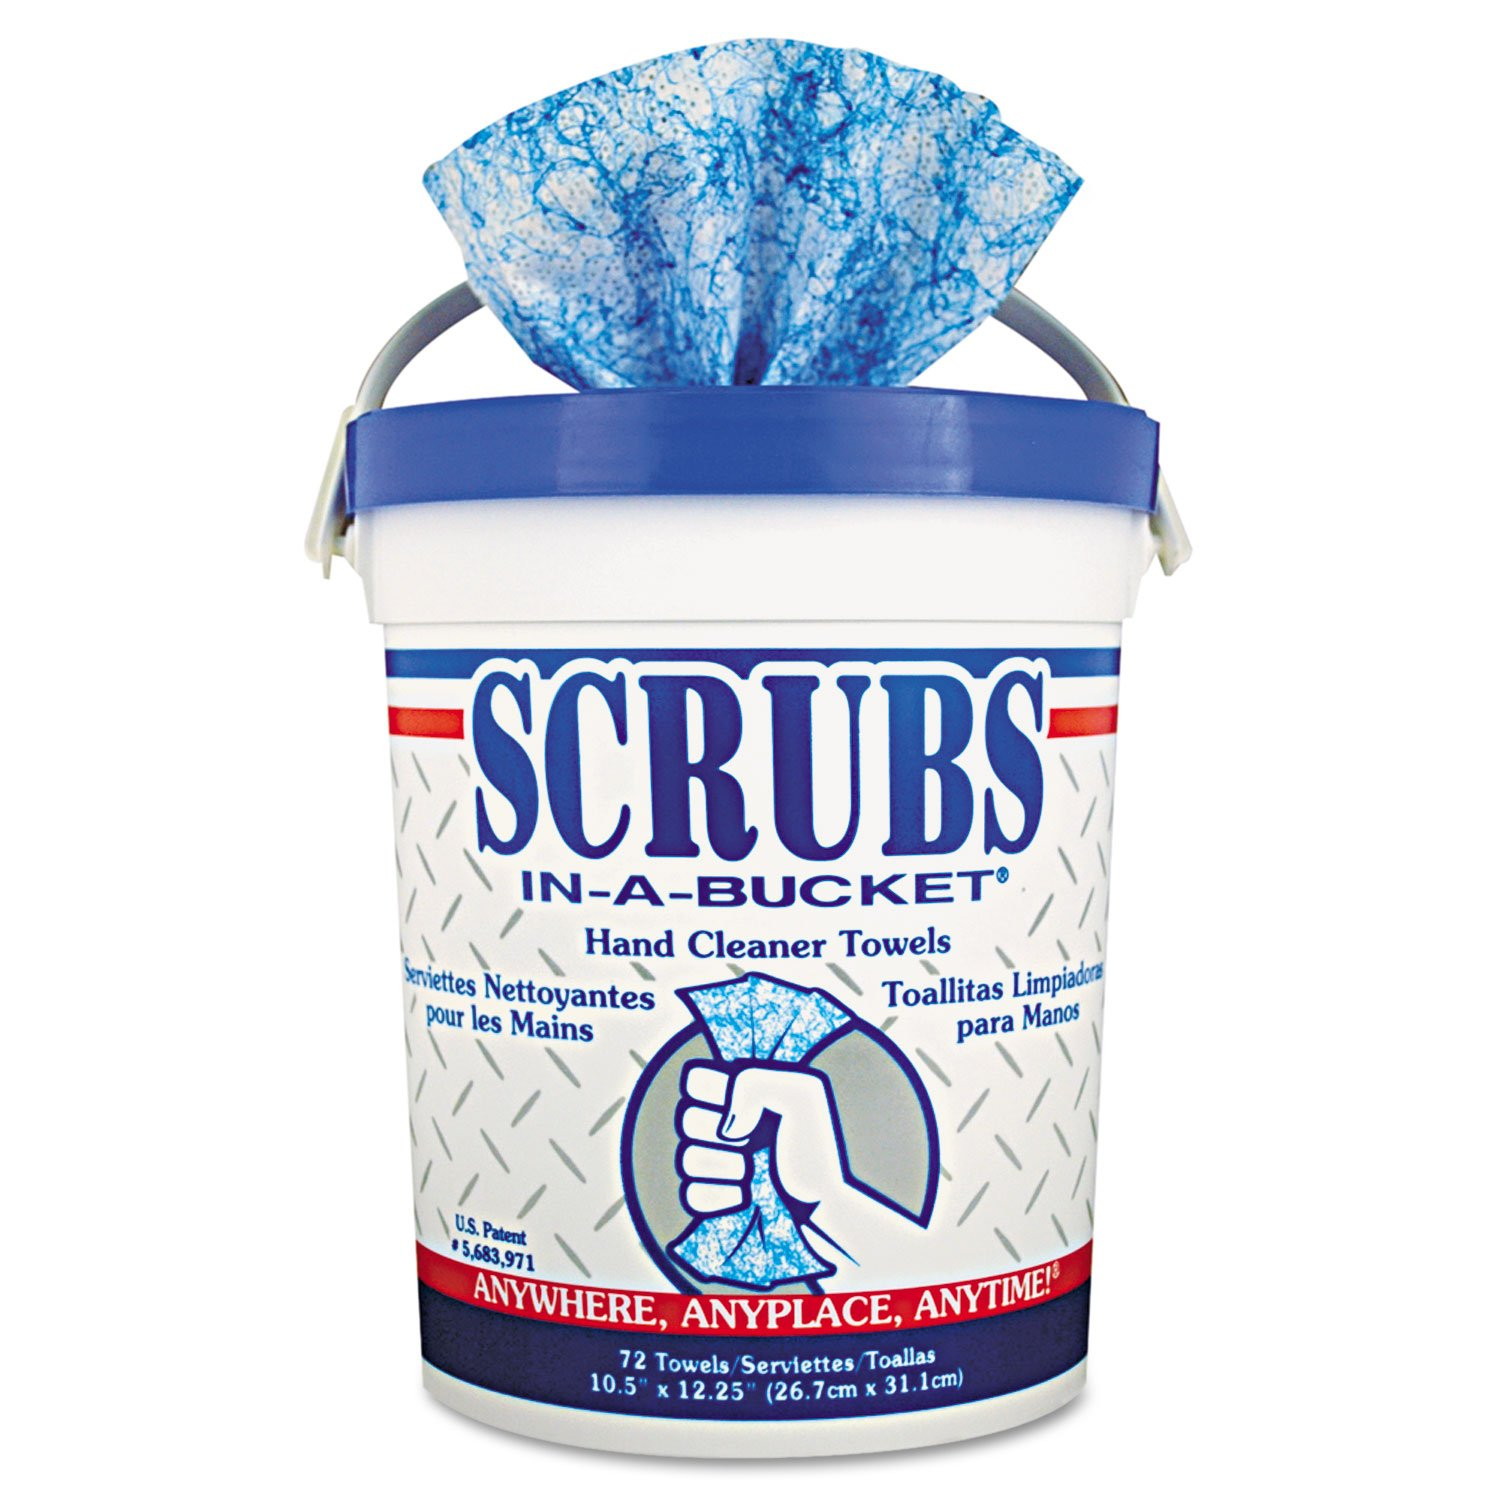 ITW42272CT - Scrubs in-A-Bucket Hand Cleaner Towels